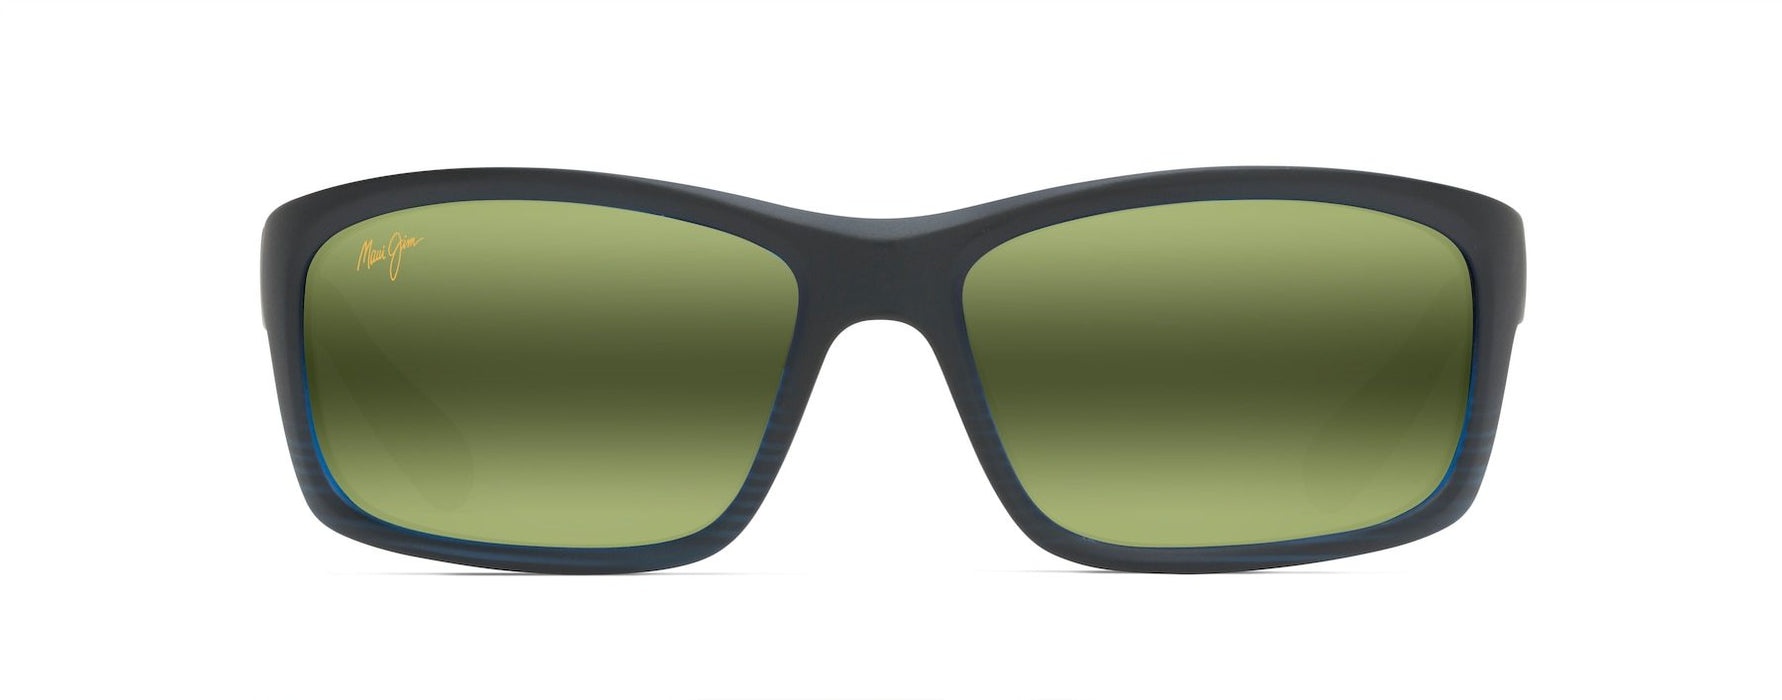 MyMaui Kanaio Coast MM766-006 Sunglasses